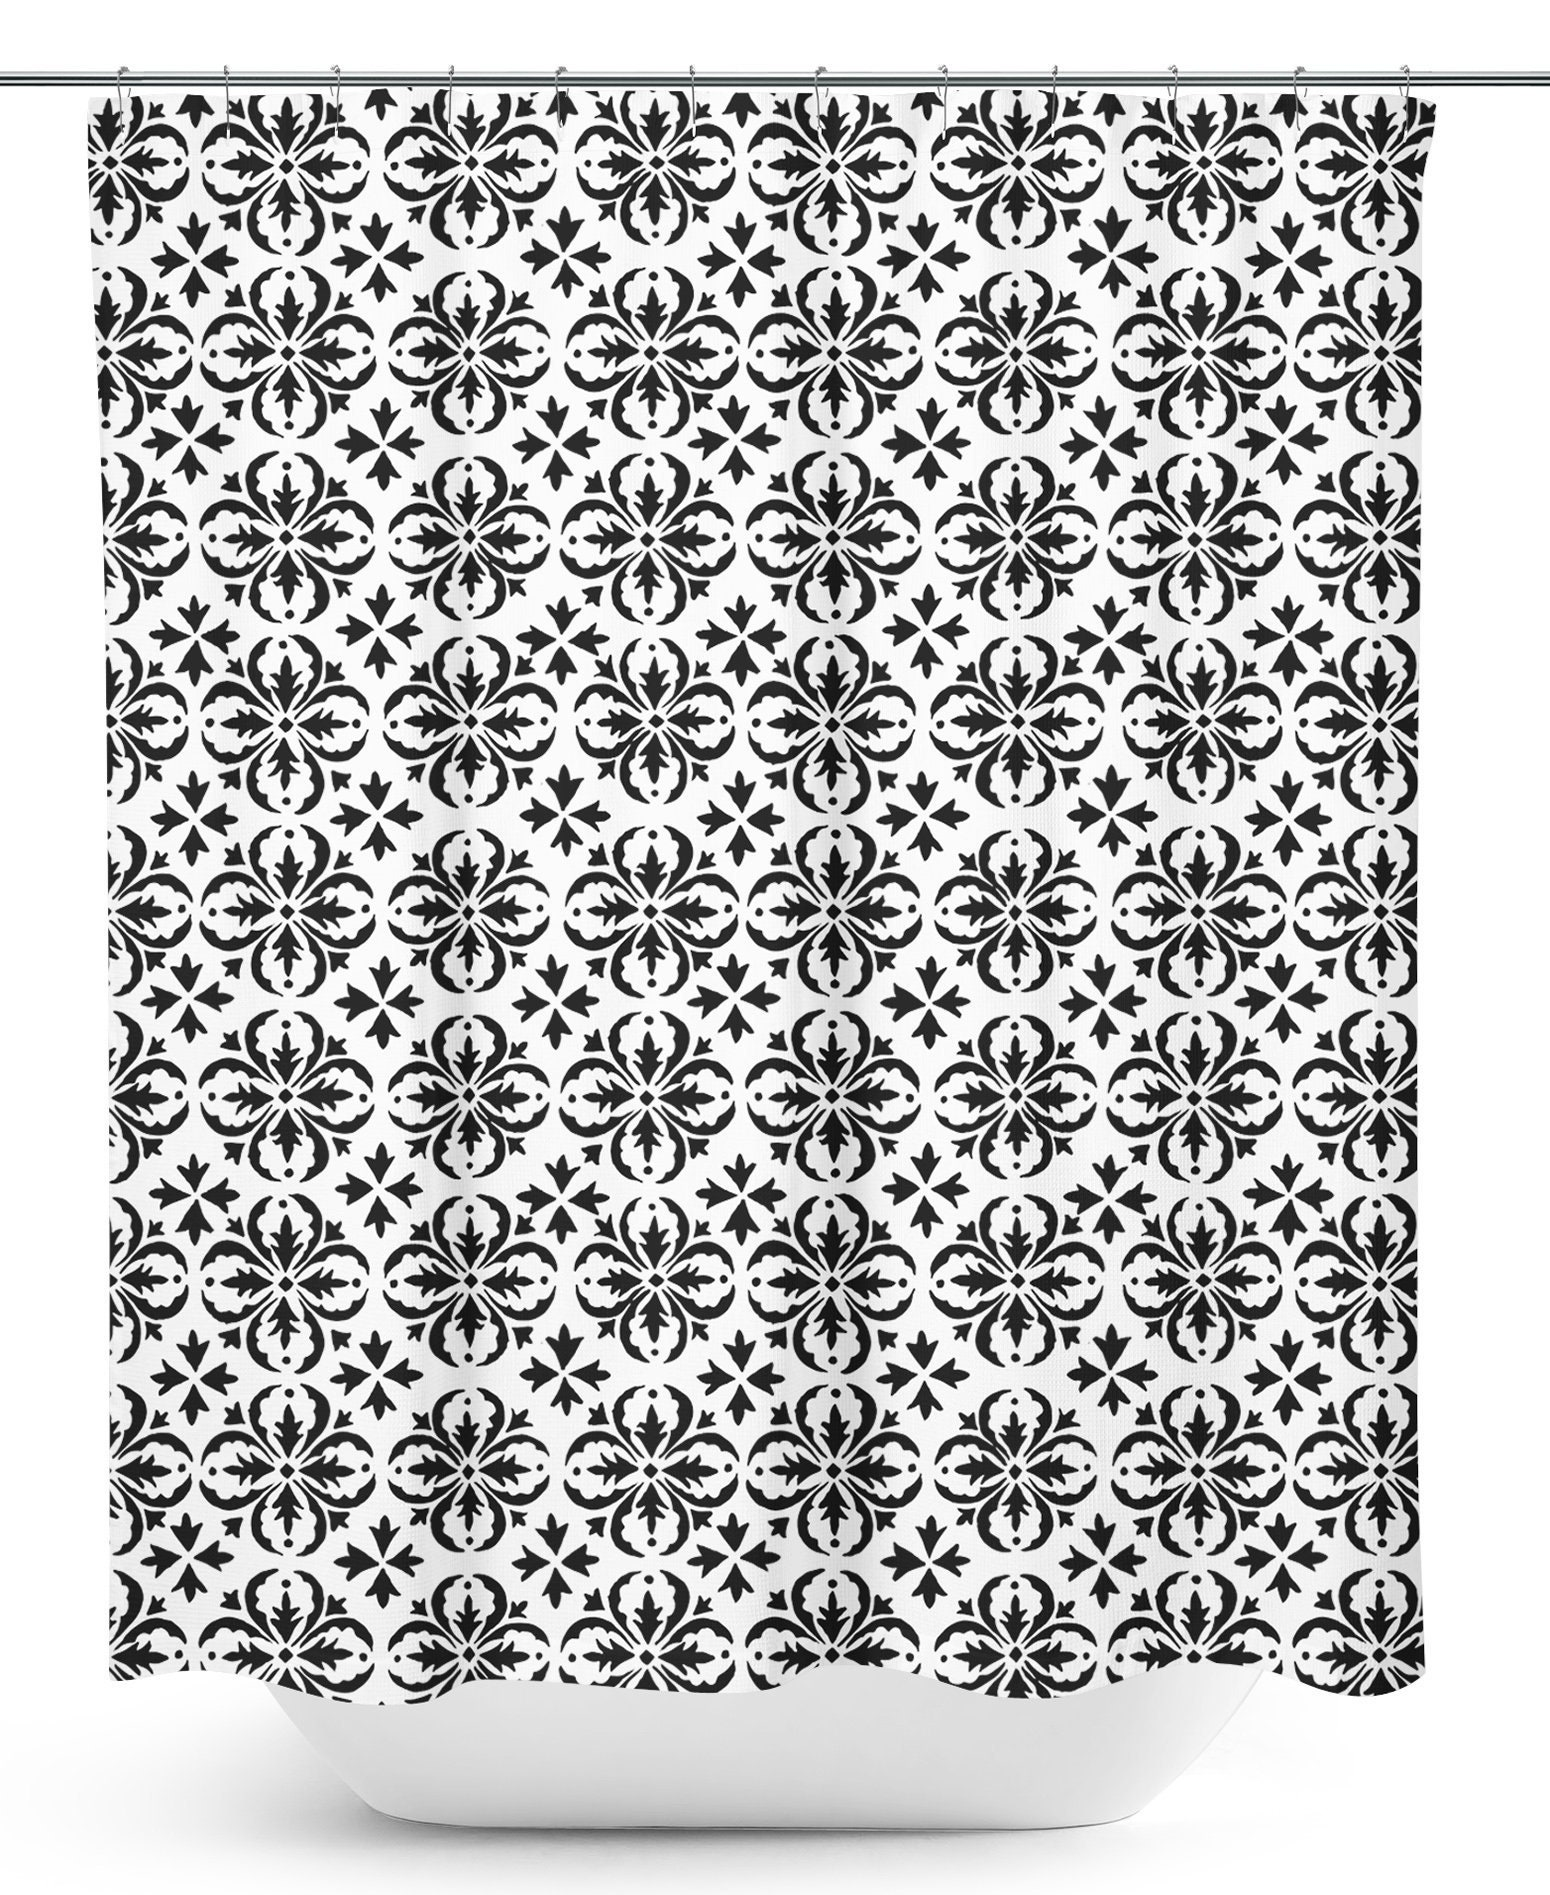 Farmhouse Shower Curtain Black And White Bathroom Decor Tile Geometric